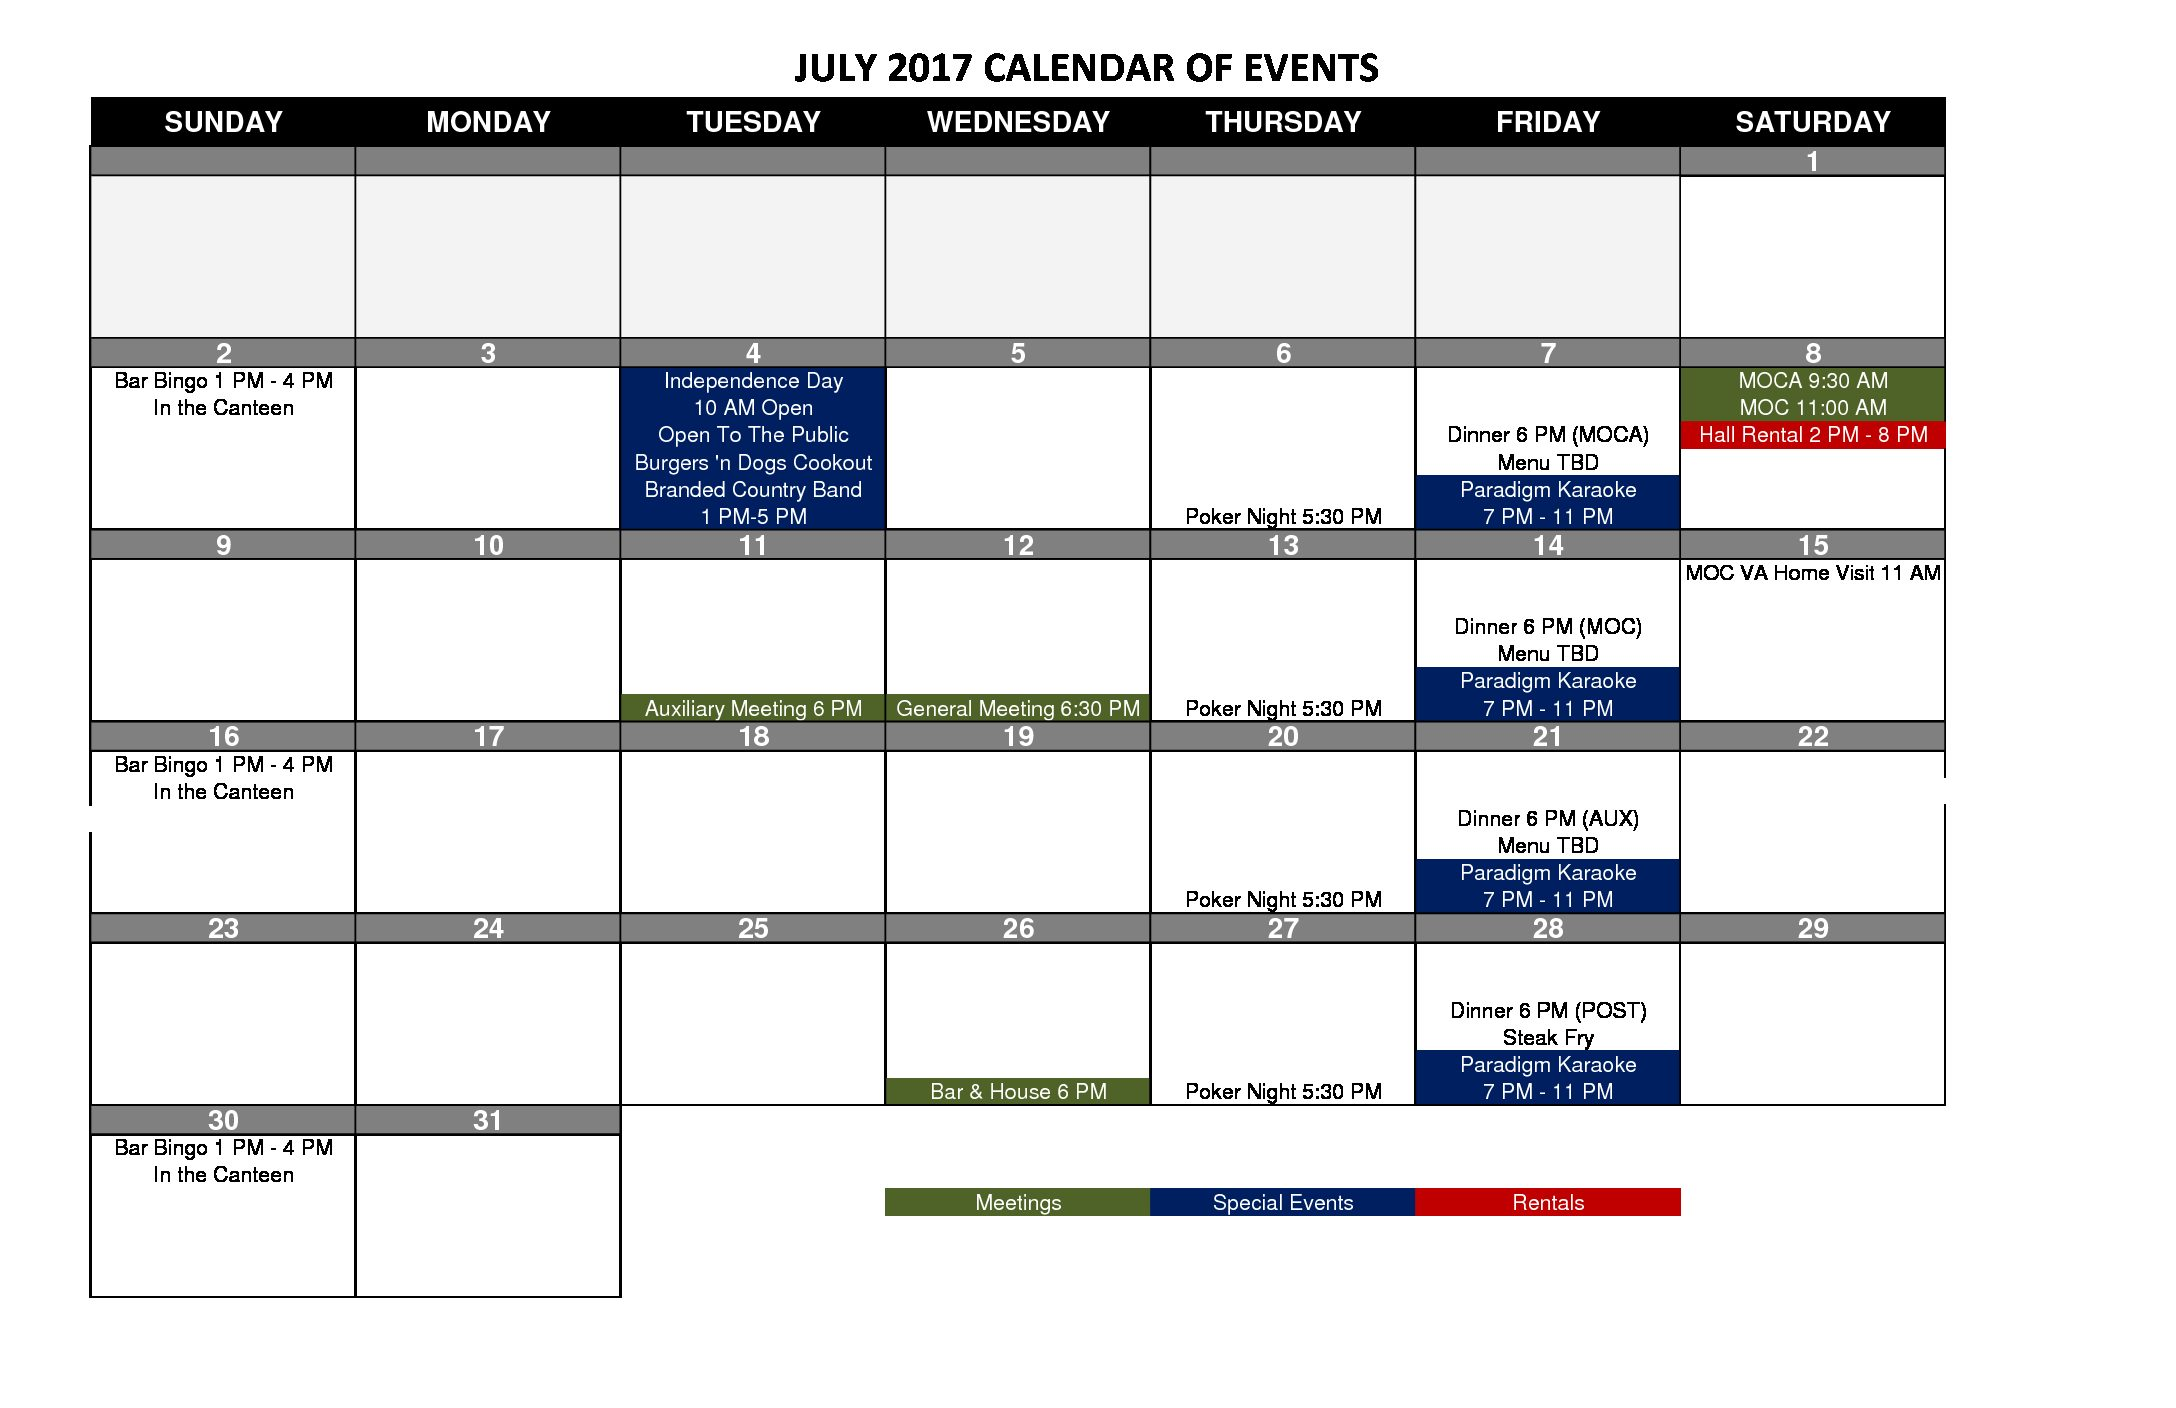 VFW 1433 Event Calendar 2017-7 July-1